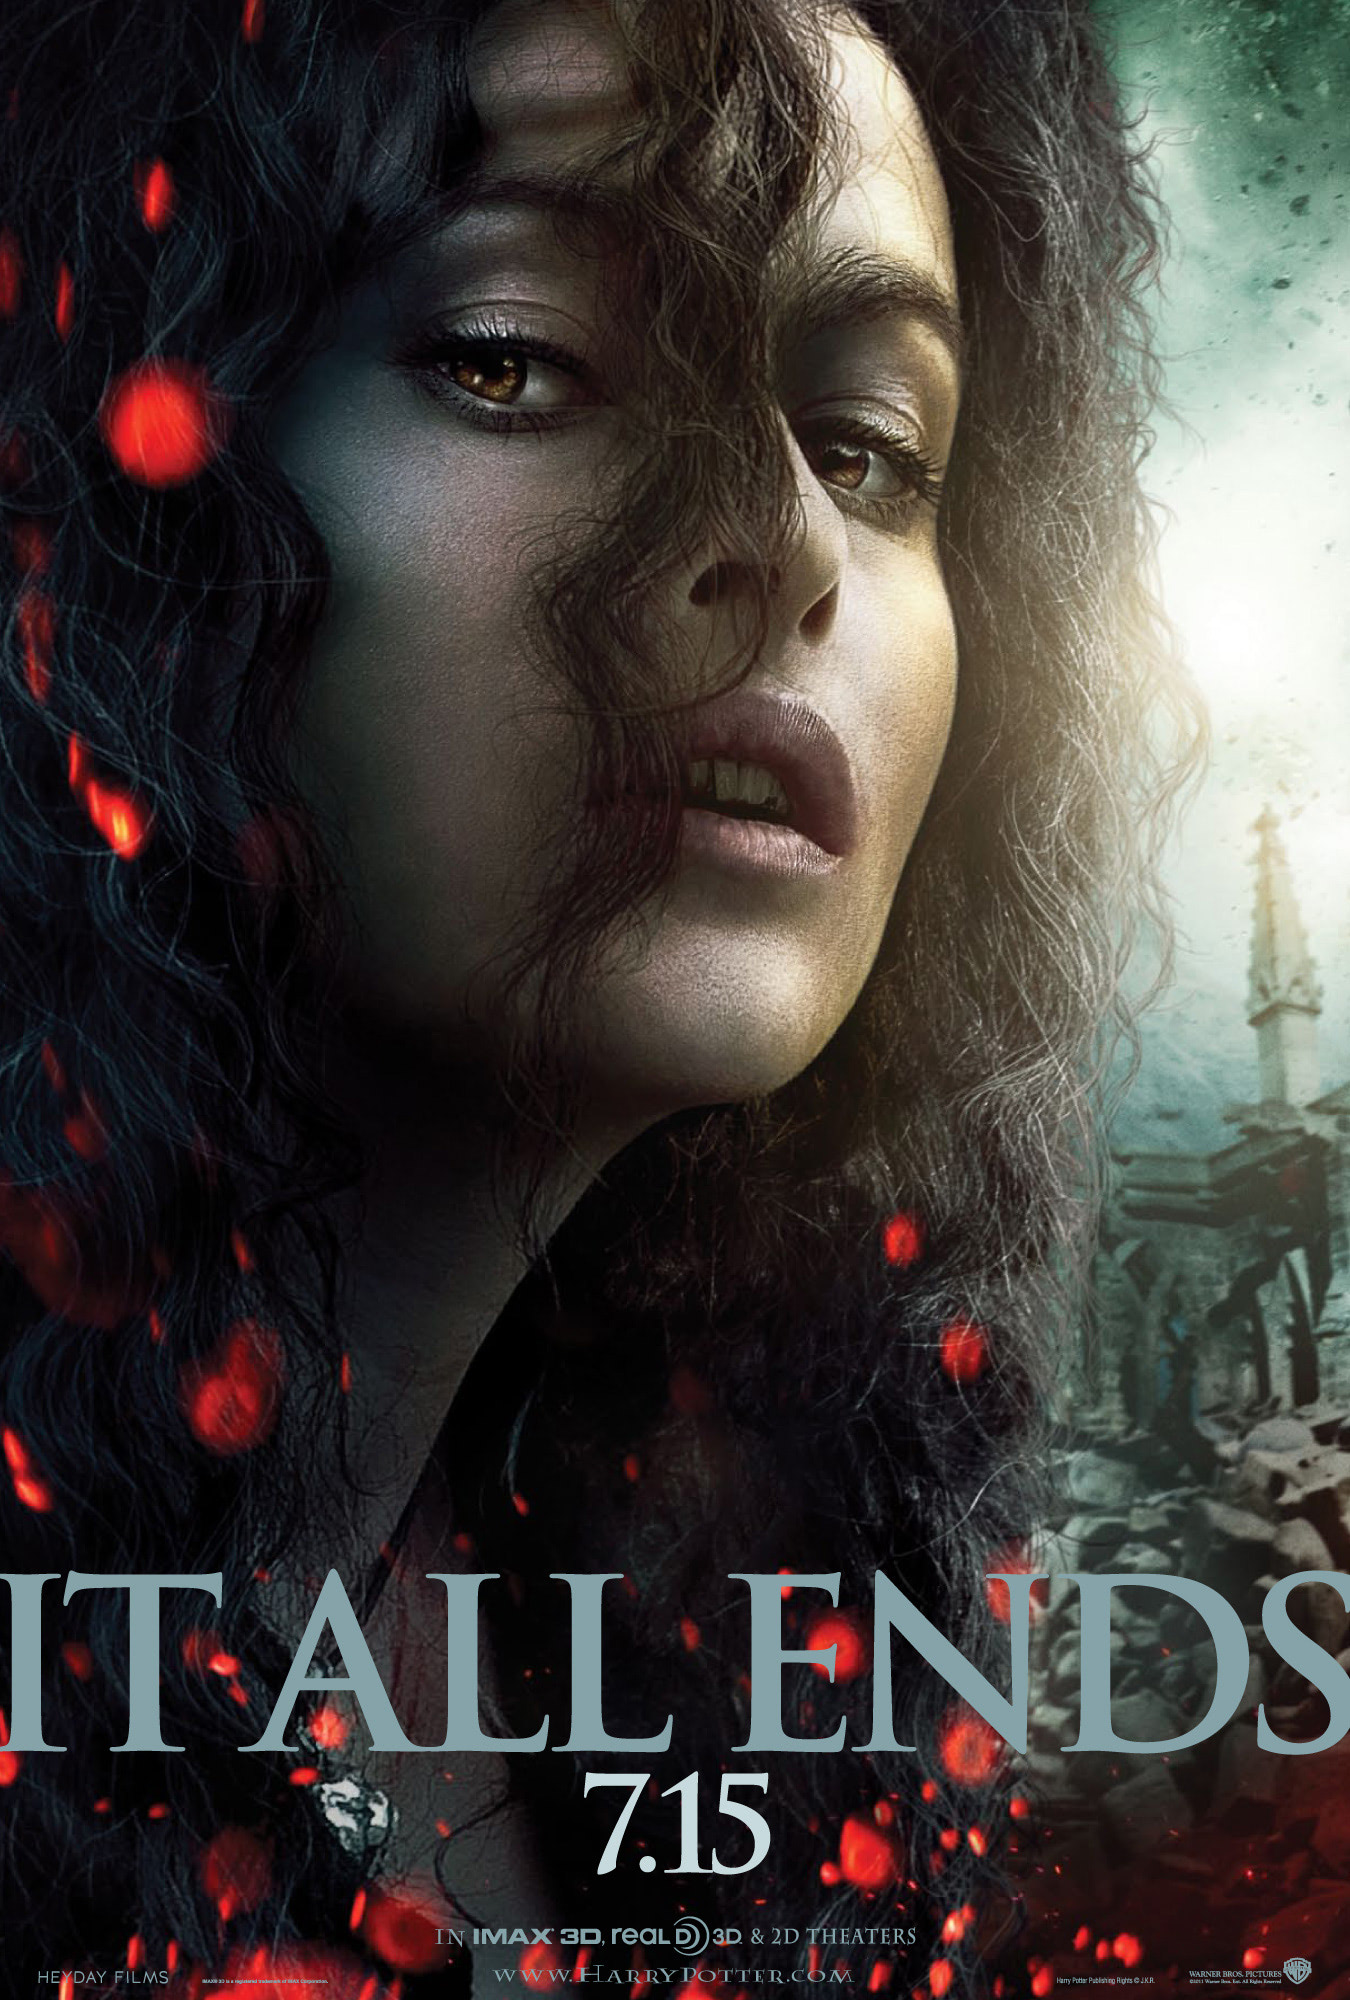 'Deathly Hallows: Part 2' Bellatrix poster #2